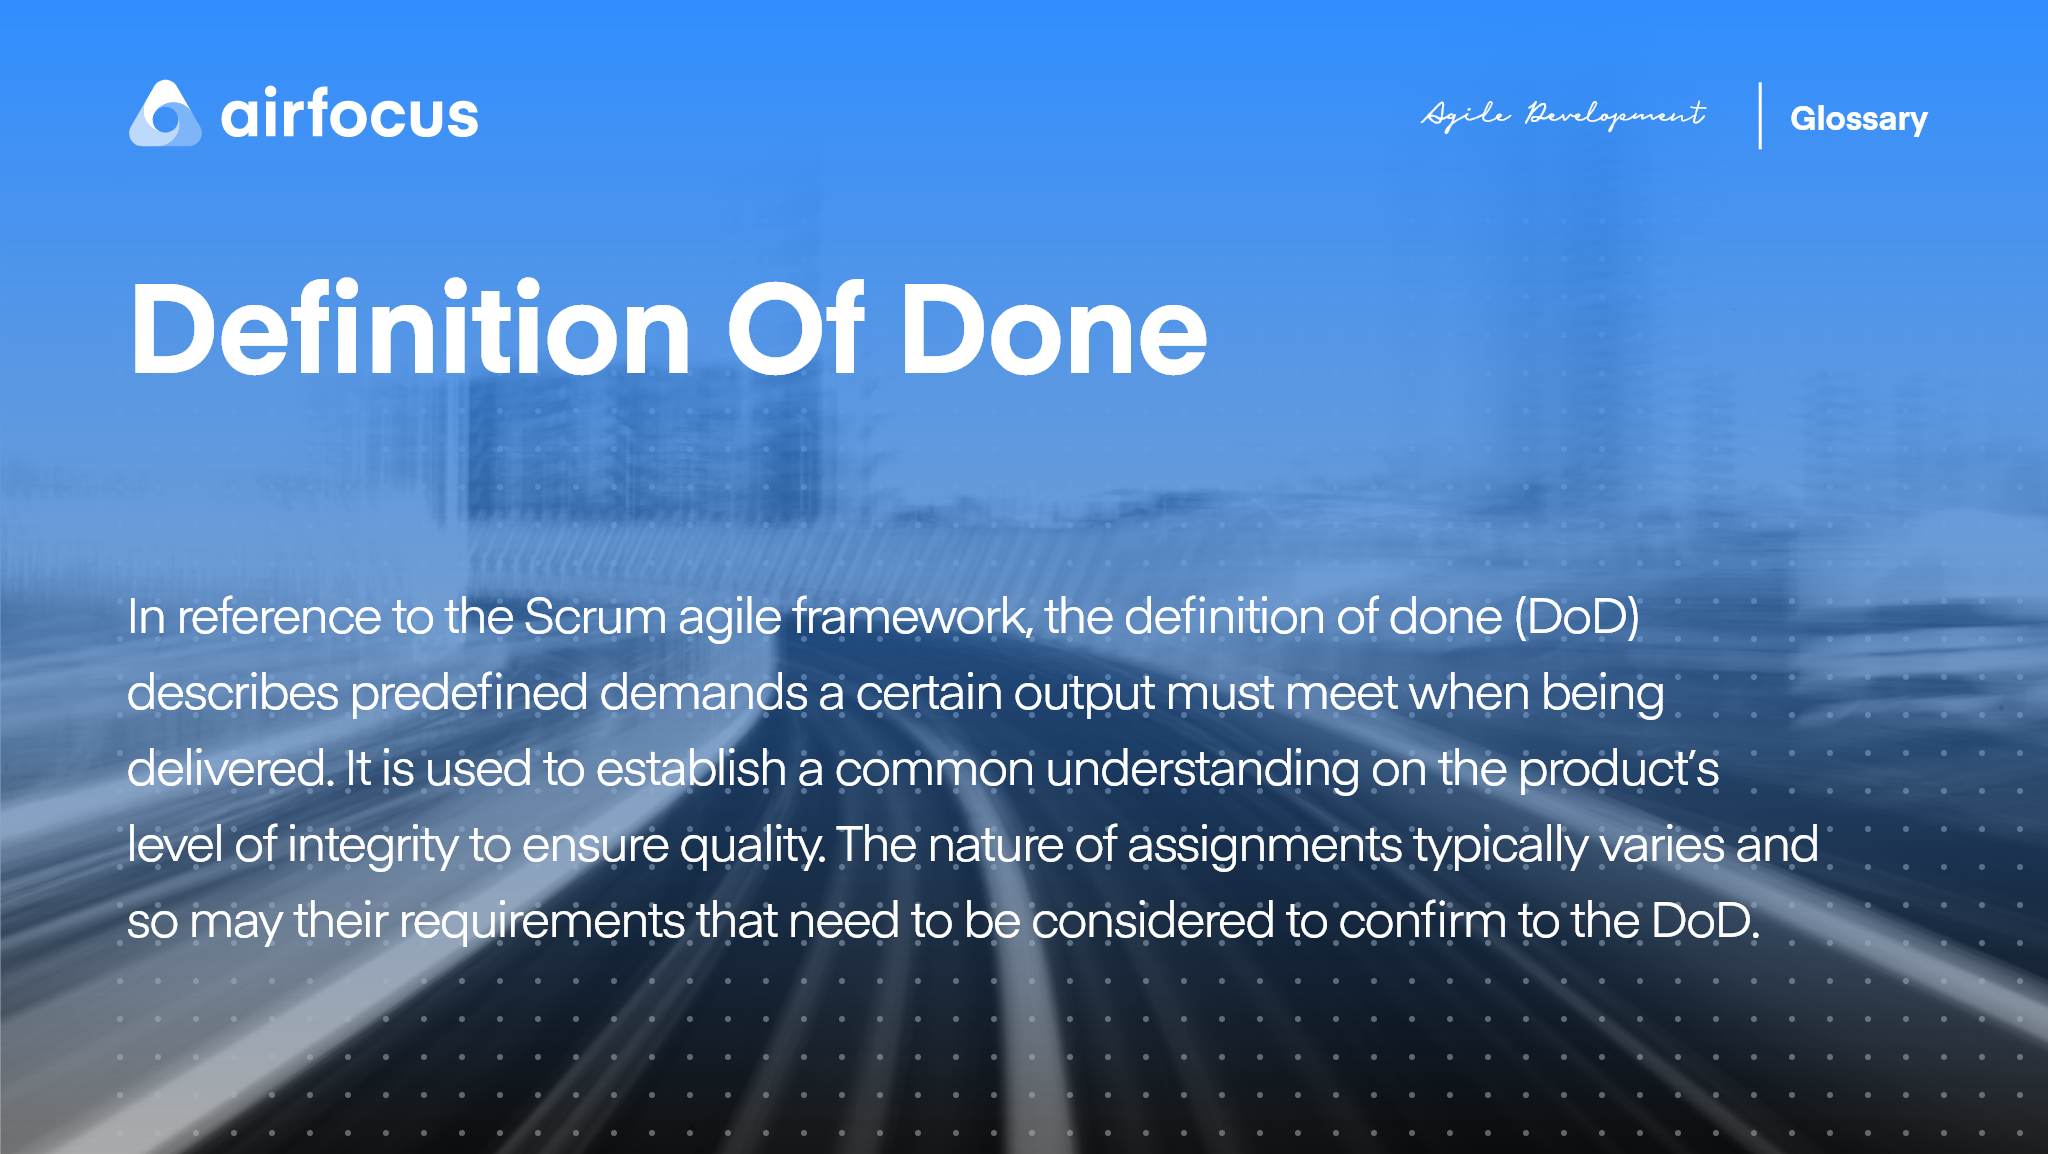 What Is the Definition of Done In the Scrum Agile Framework